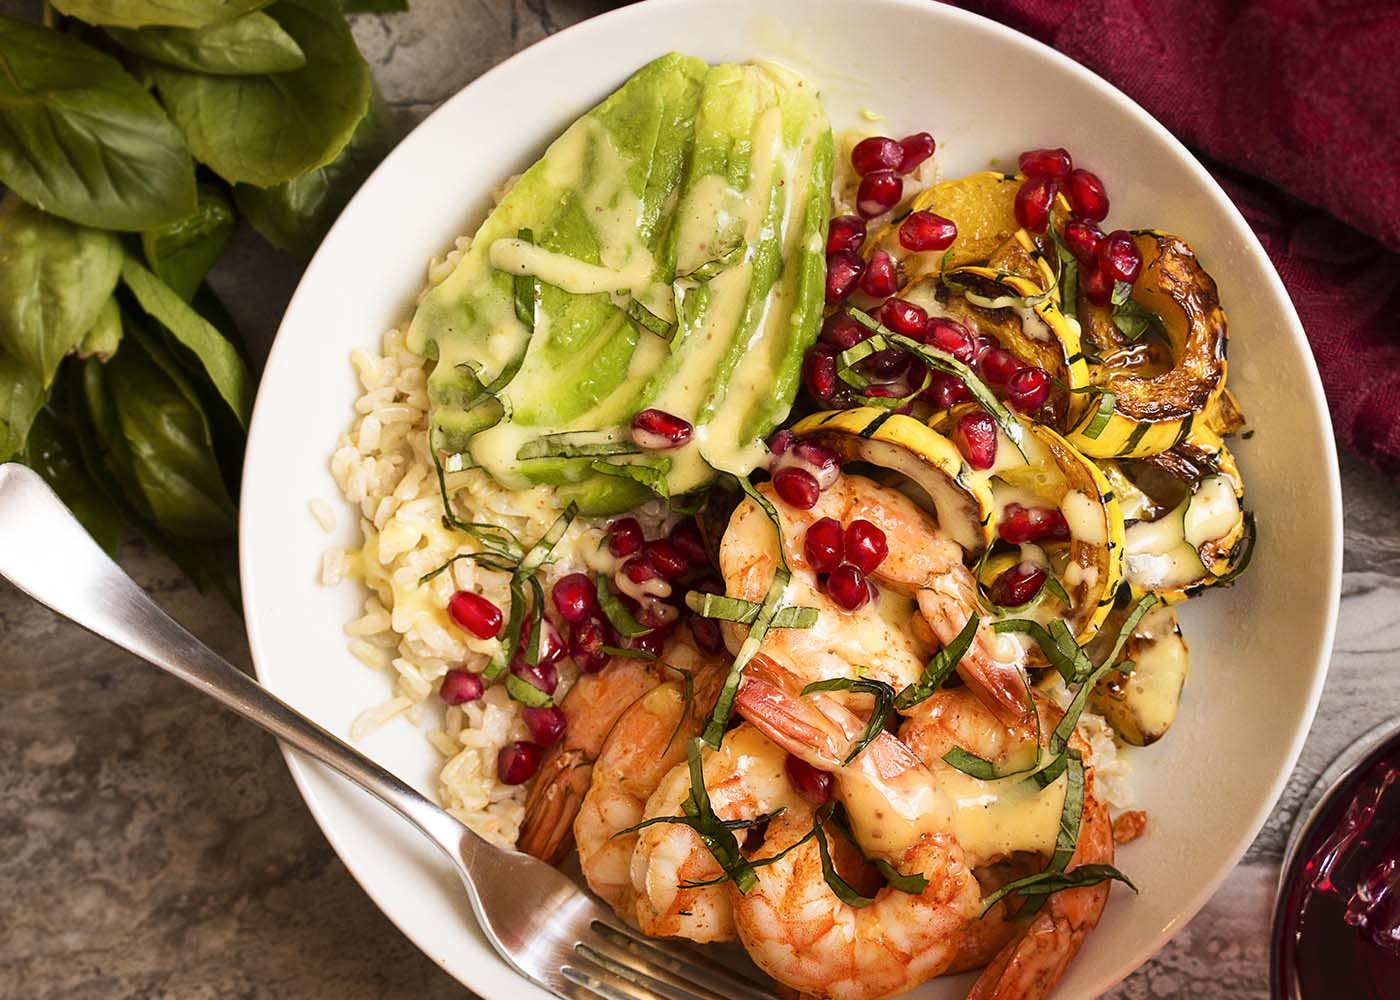 This shrimp rice bowl is full of healthy veggies like roasted delicata squash and avocado and topped with a creamy aioli for a cozy dinner. Gluten-free. | justalittlebitofbacon.com